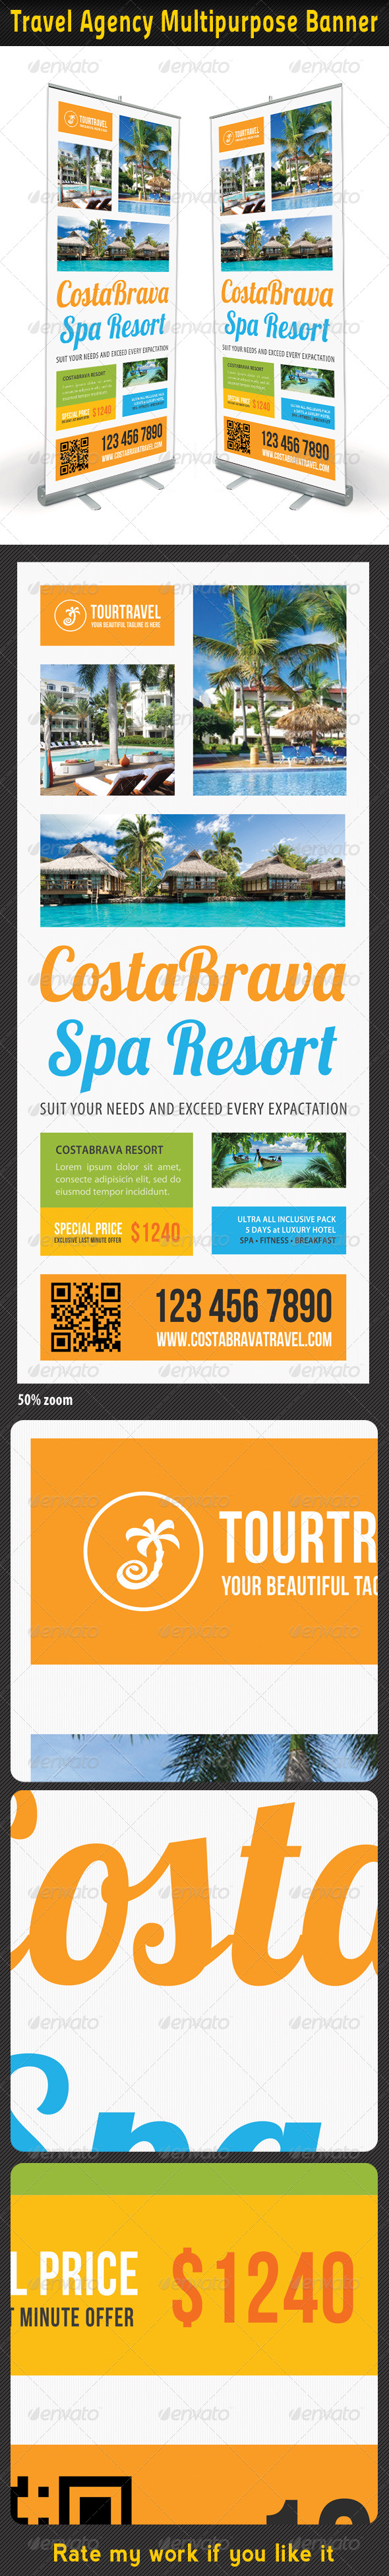 Travel Agency Banner Template 06 - Signage Print Templates